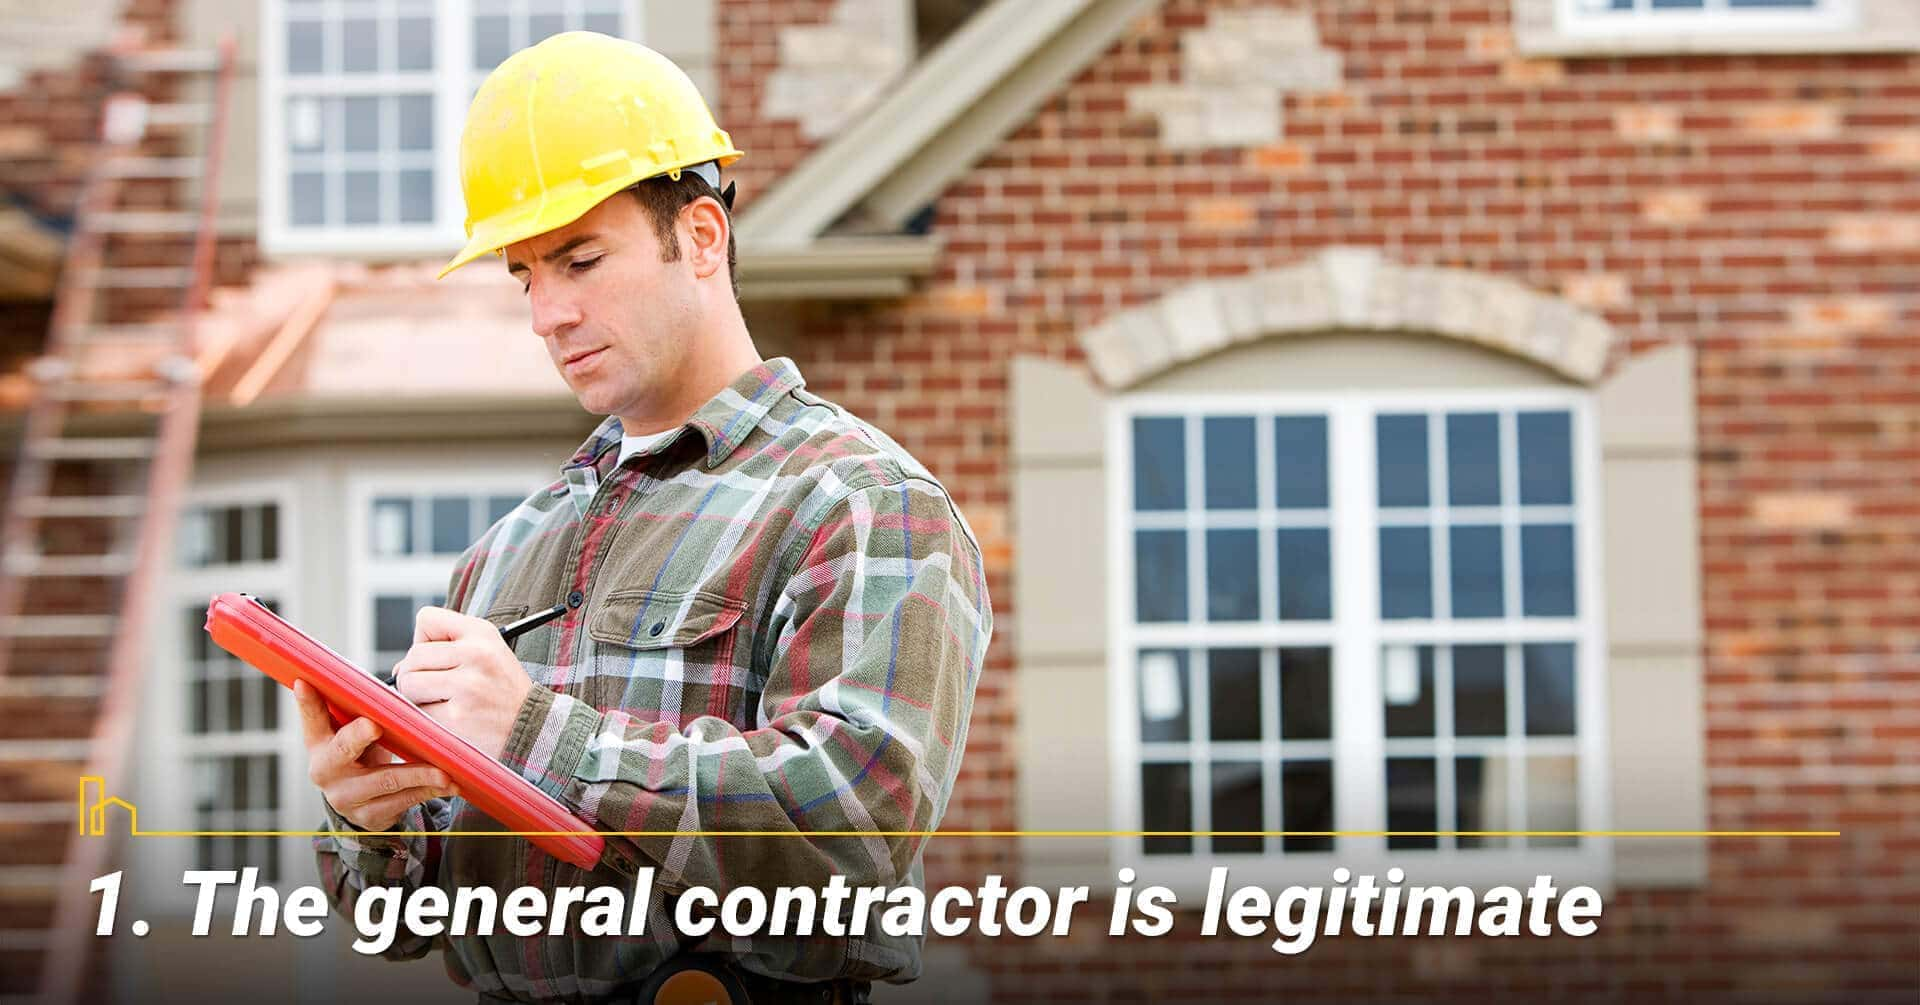 The general contractor is legitimate